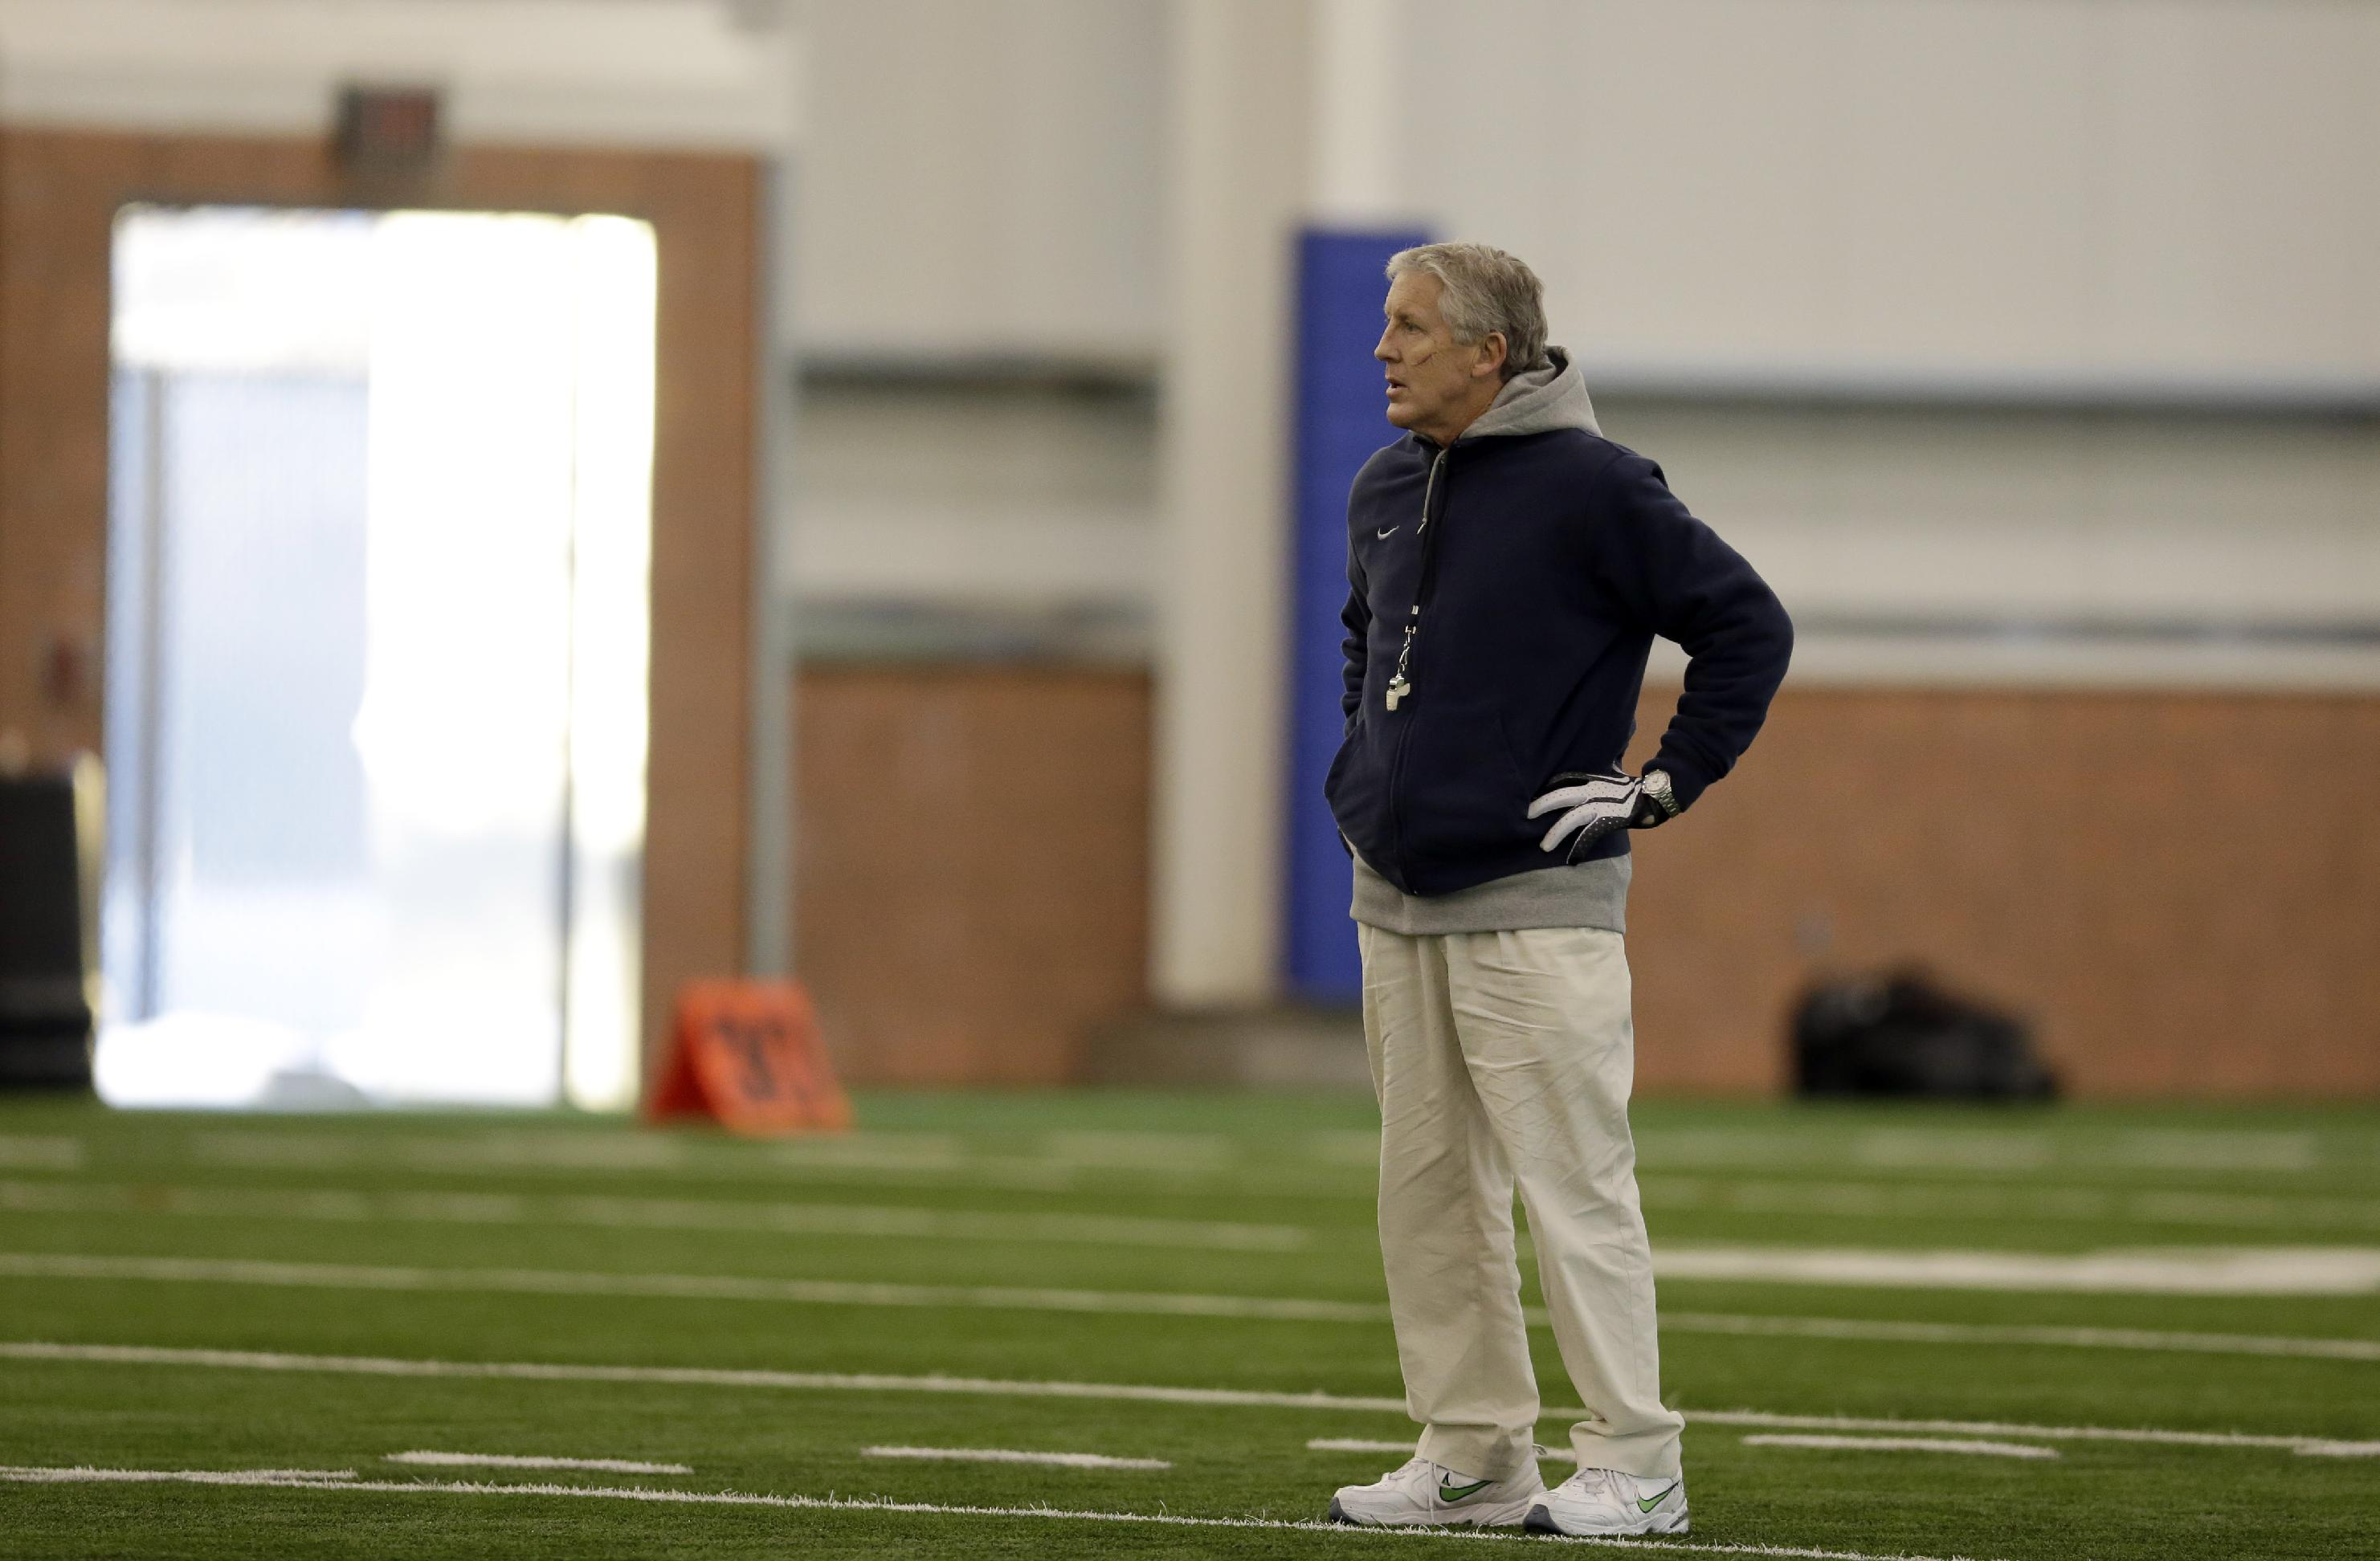 Seattle Seahawks head coach Pete Carroll watches his team warm up during NFL football practice Thursday, Jan. 30, 2014, in East Rutherford, N.J. The Seahawks and the Denver Broncos are scheduled to play in the Super Bowl XLVIII football game Sunday, Feb. 2, 2014. (AP Photo)